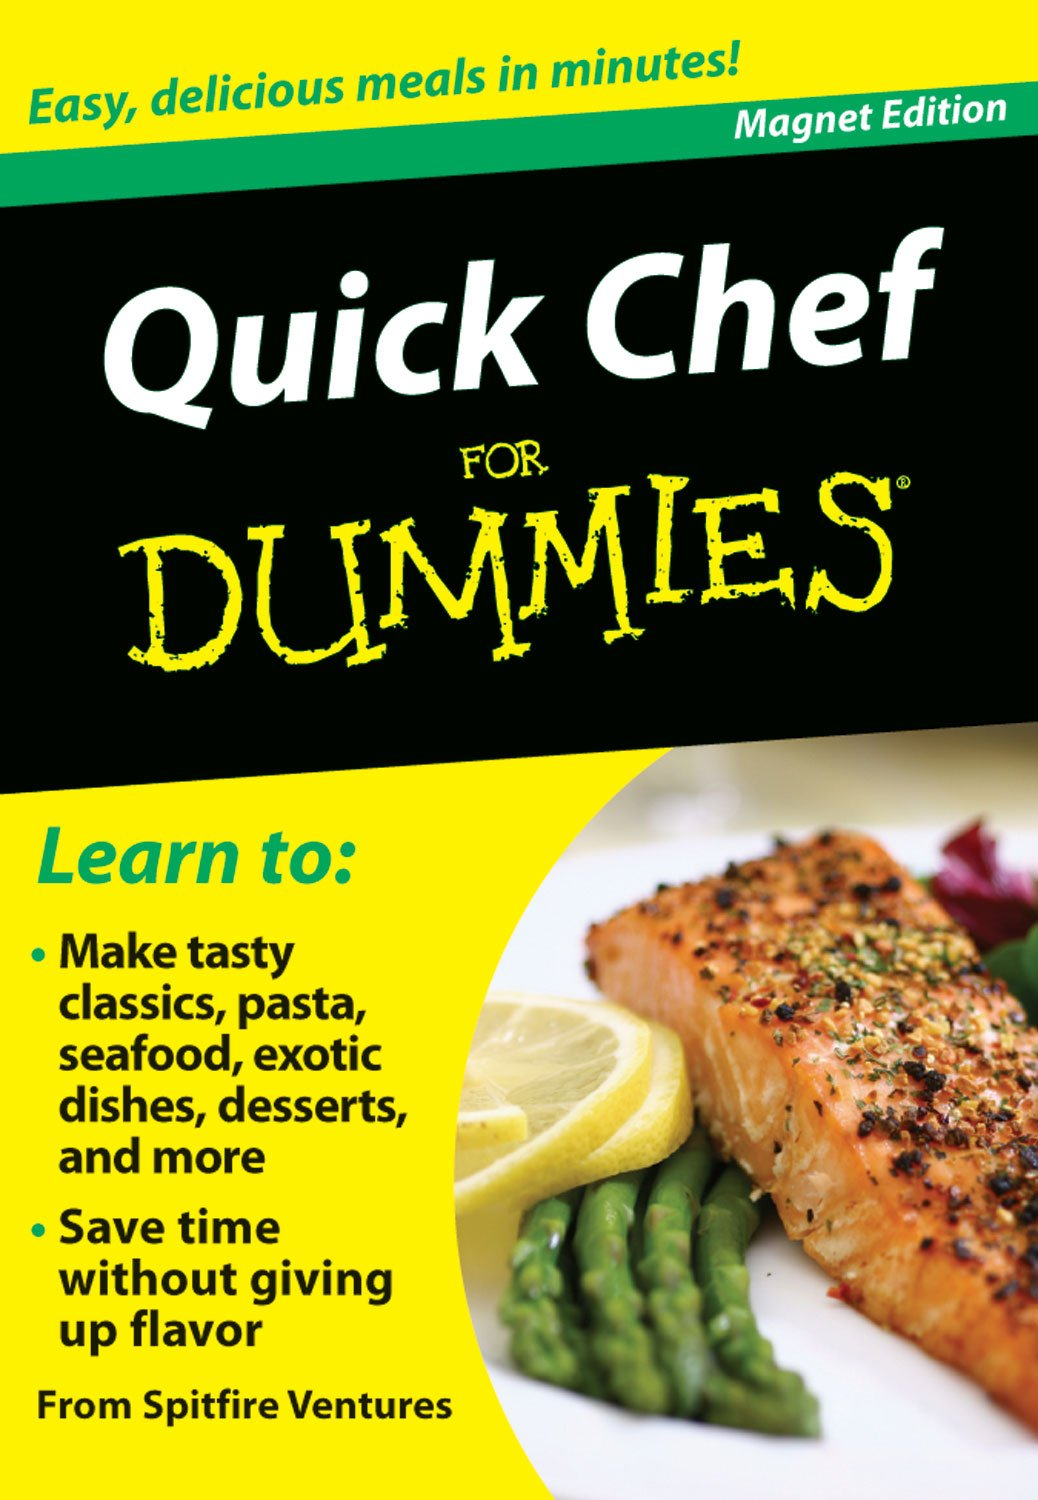 Quick Chef for Dummies: Easy, Delicious Meals in Minutes! (Refrigerator Magnet Books for Dummies) pdf